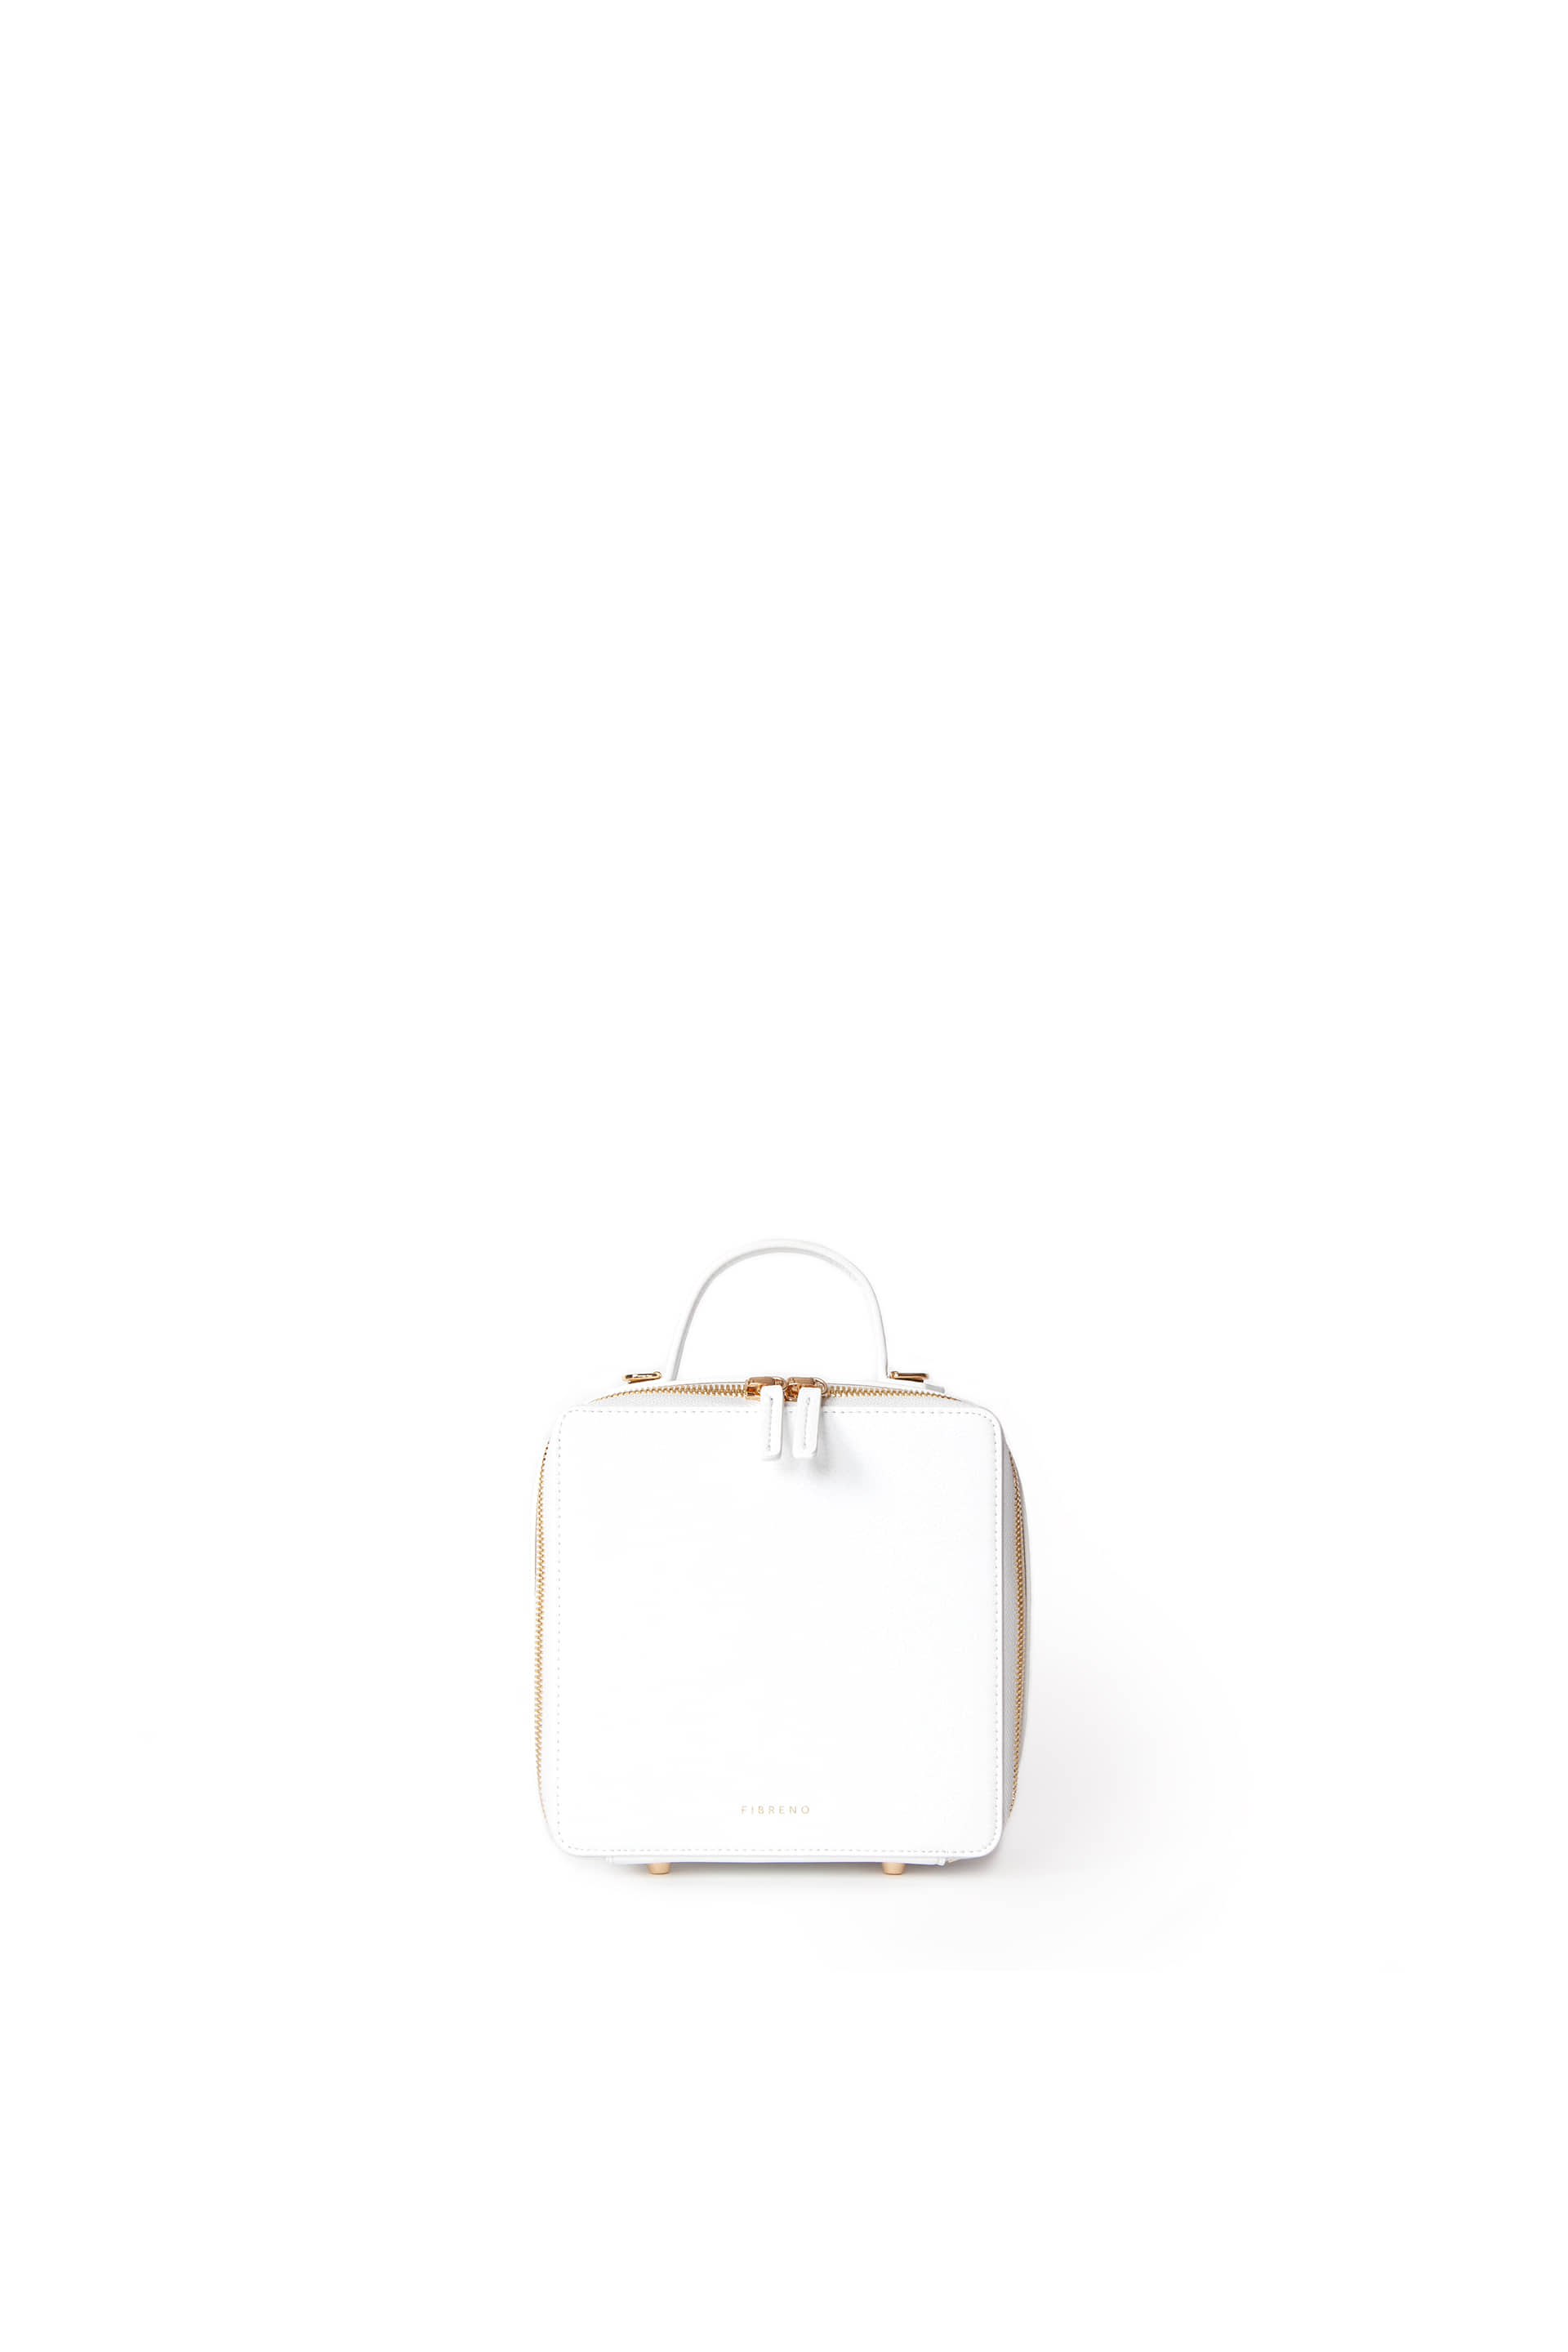 SQUARE BAG 23 White